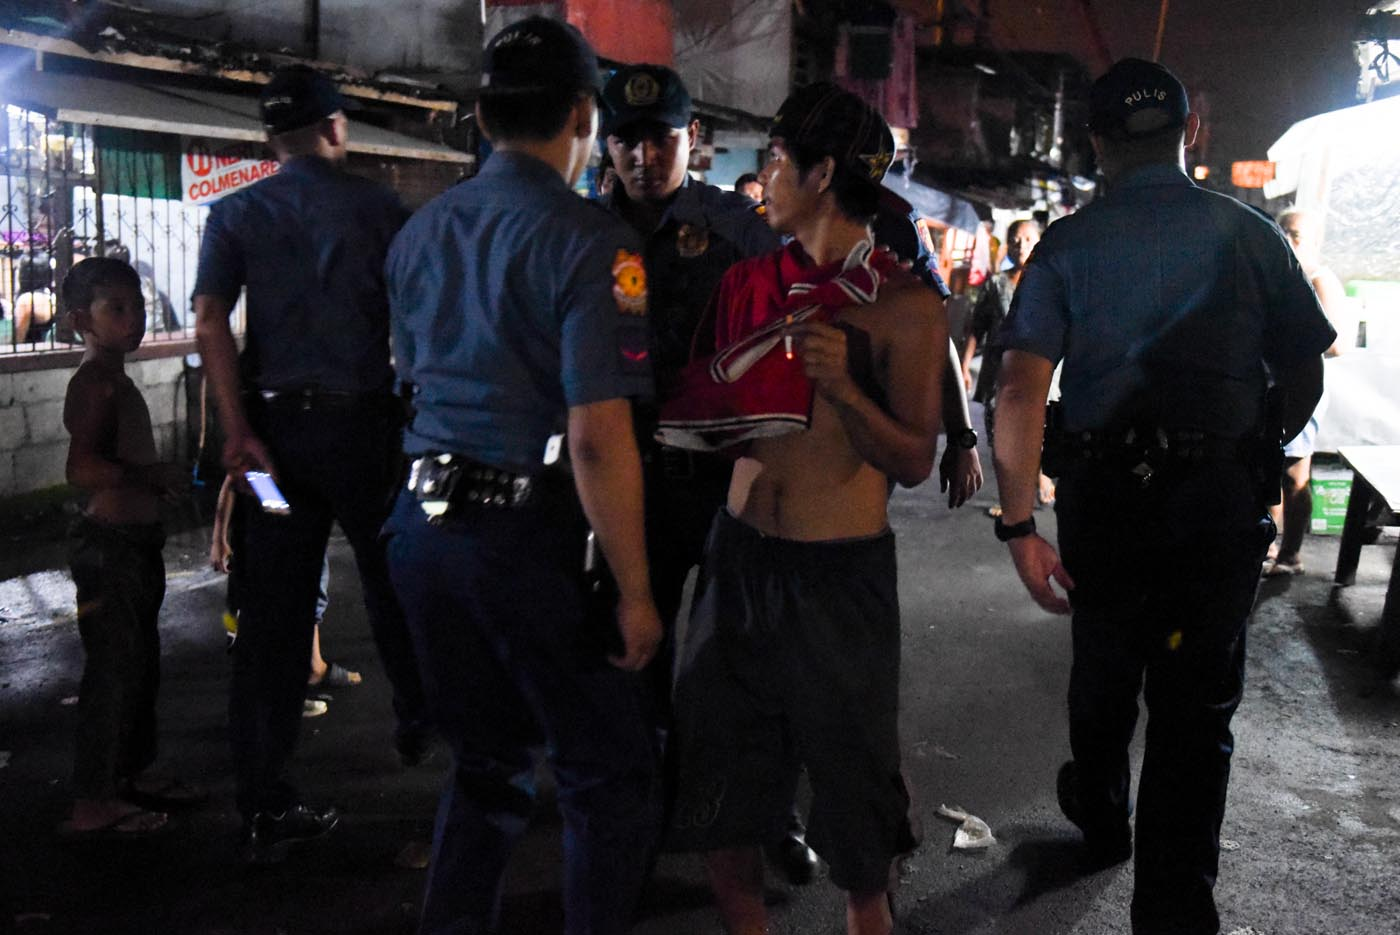 NOT ALL ARE DRUG SUSPECTS. Bystanders and shirtless men are 'invited' by the police for 'validation.'